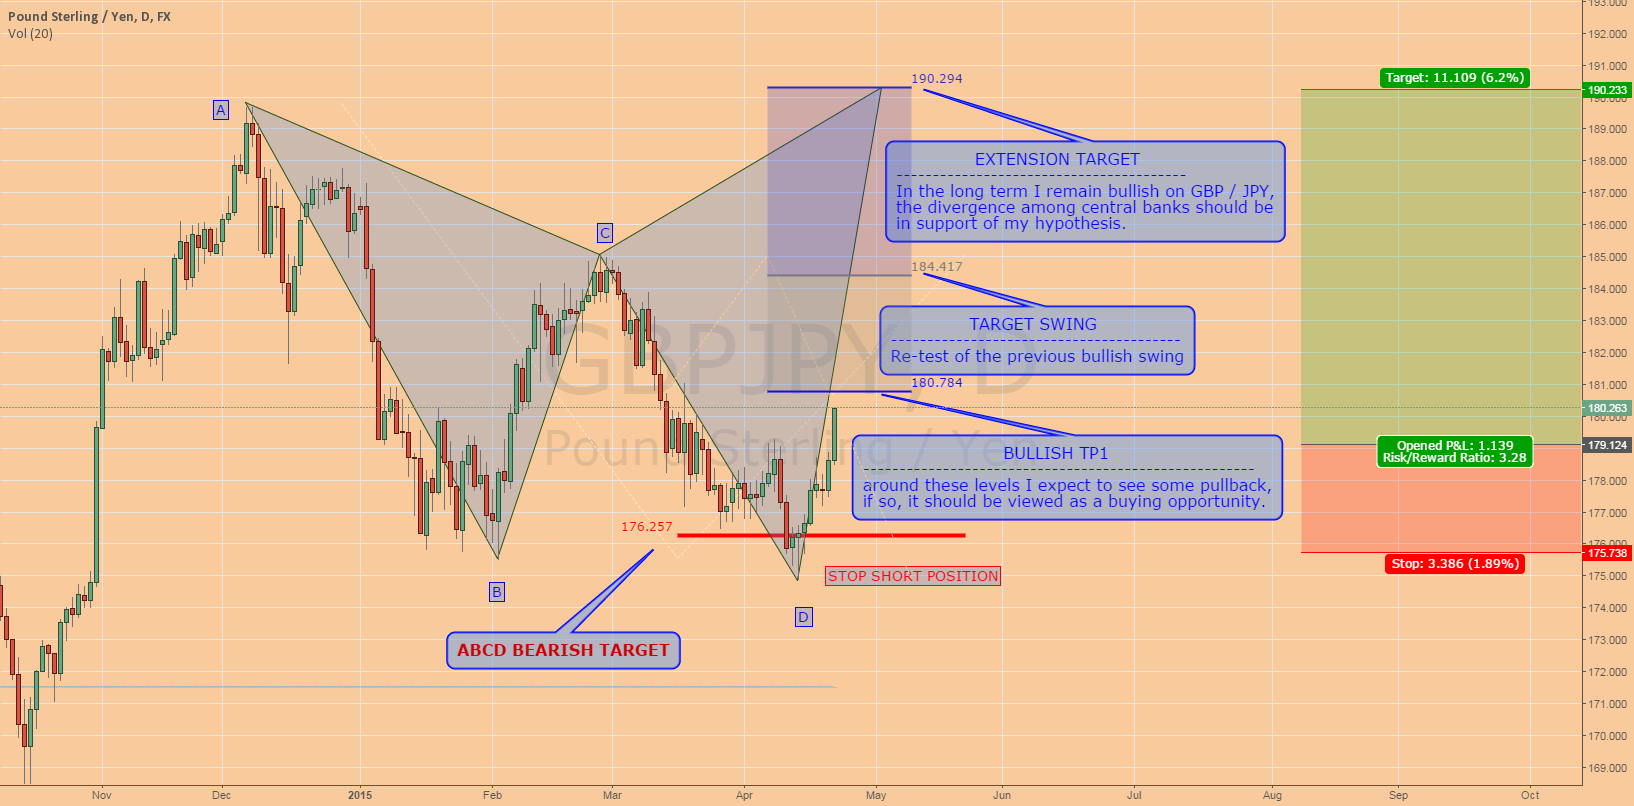 GBPJPY: Medium Term Outlook